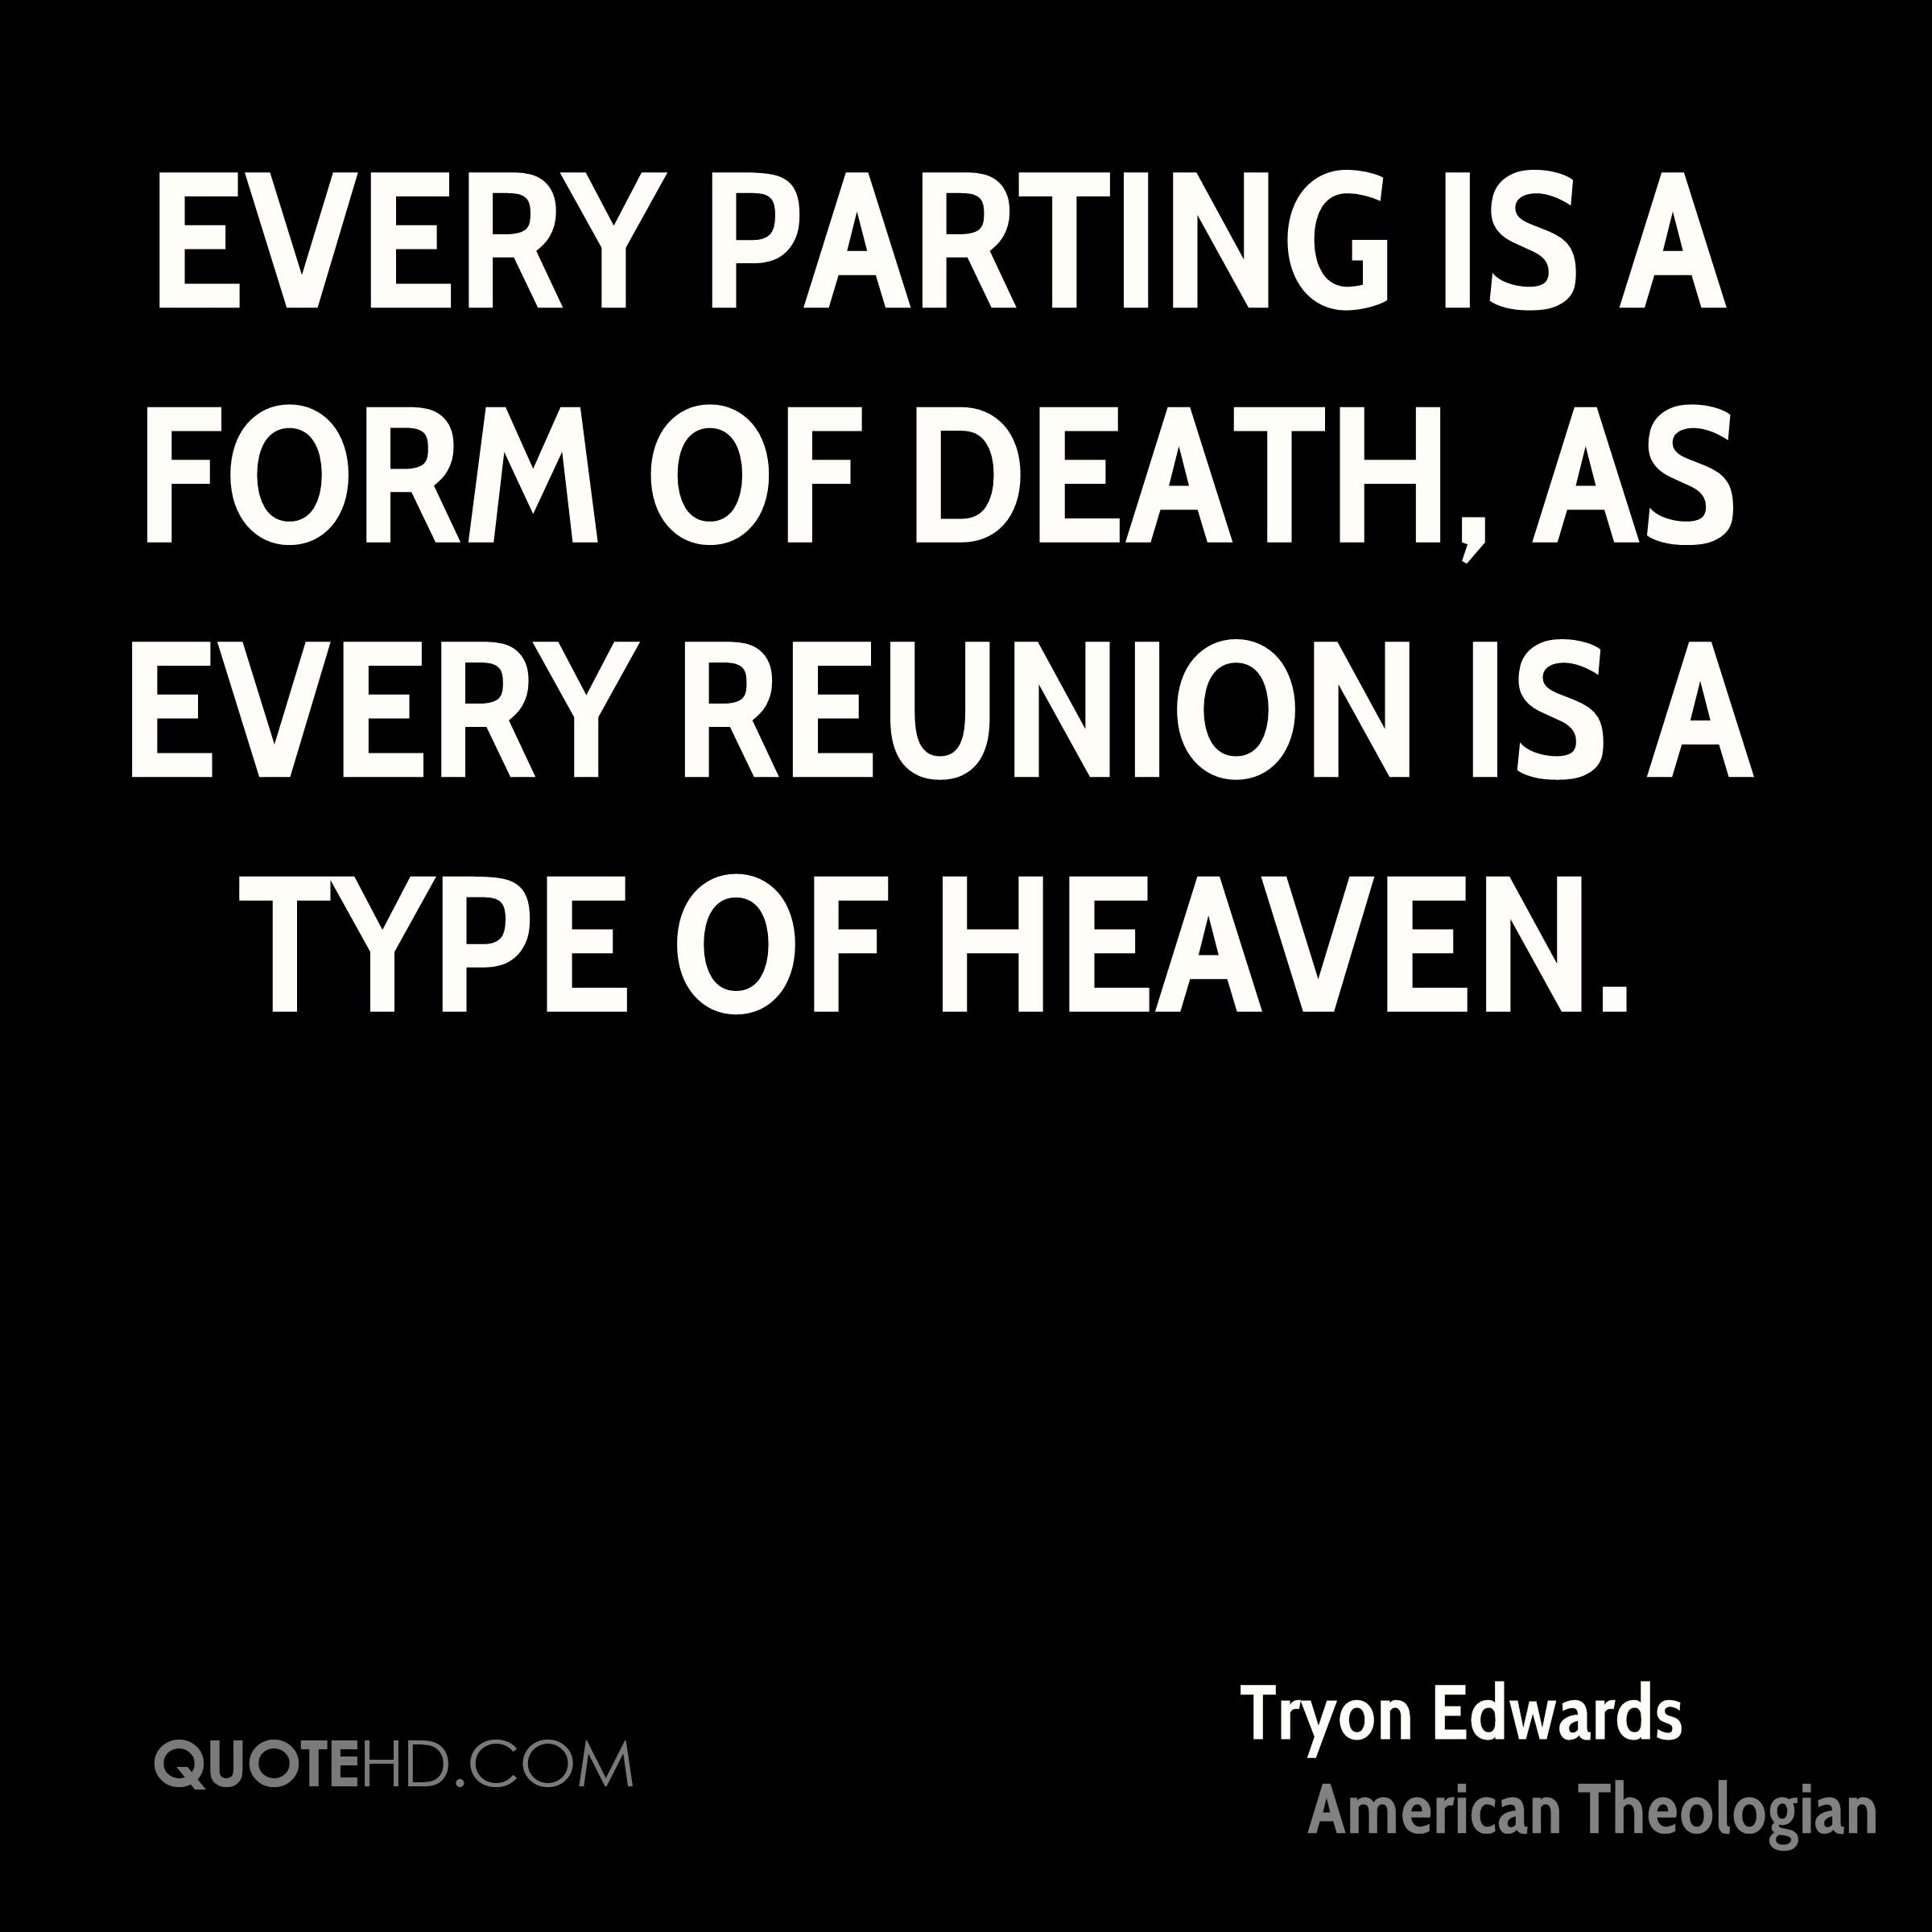 Every parting is a form of death, as every reunion is a type of heaven.